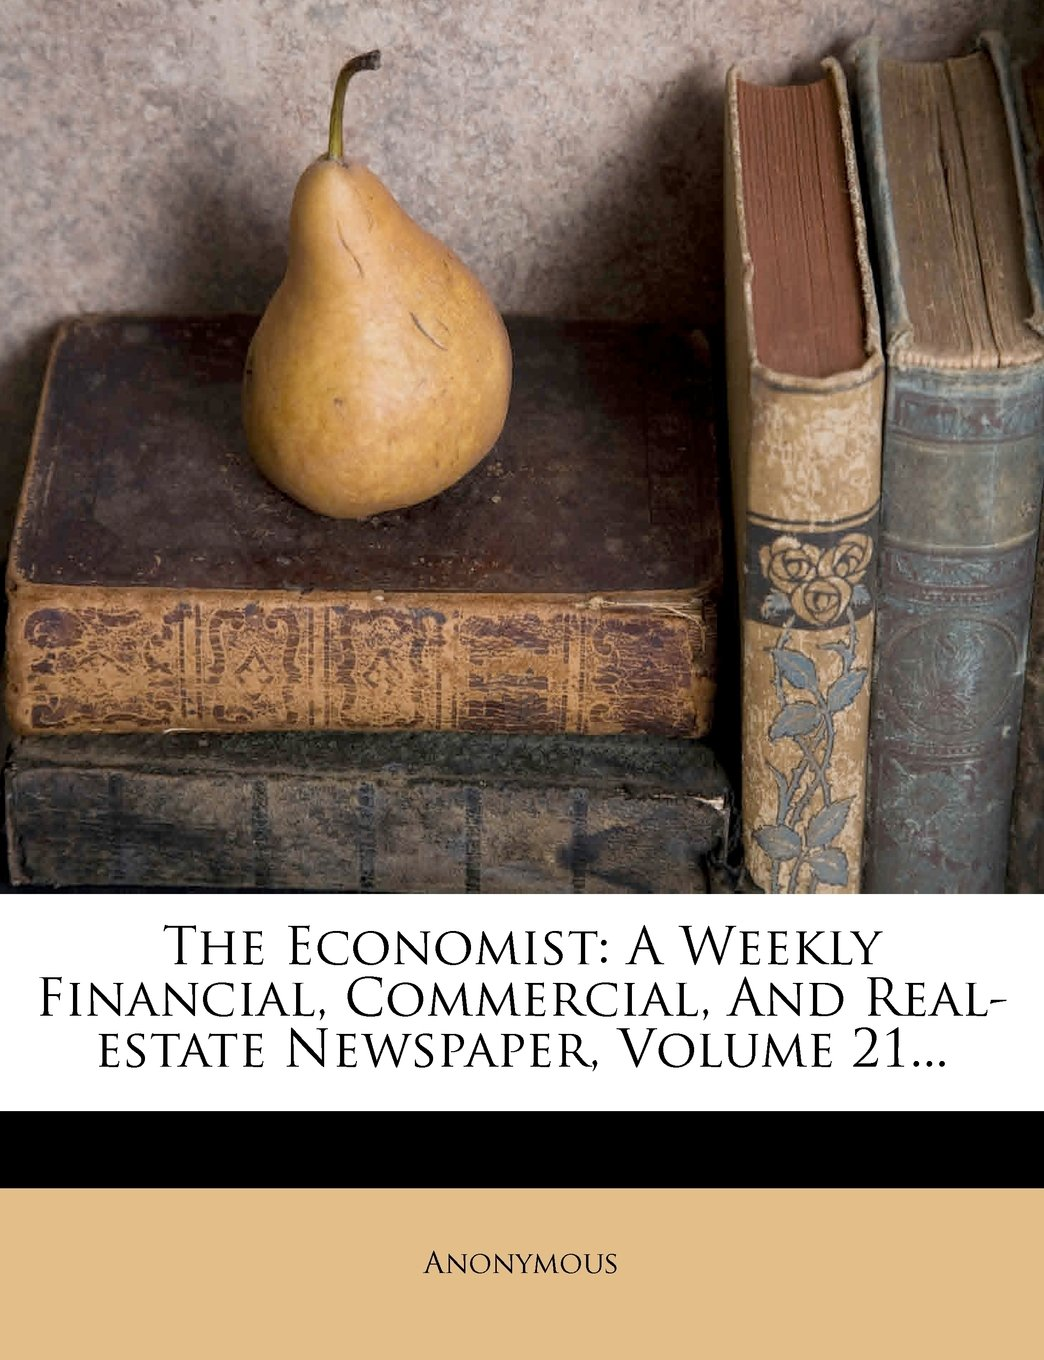 Download The Economist: A Weekly Financial, Commercial, And Real-estate Newspaper, Volume 21... PDF